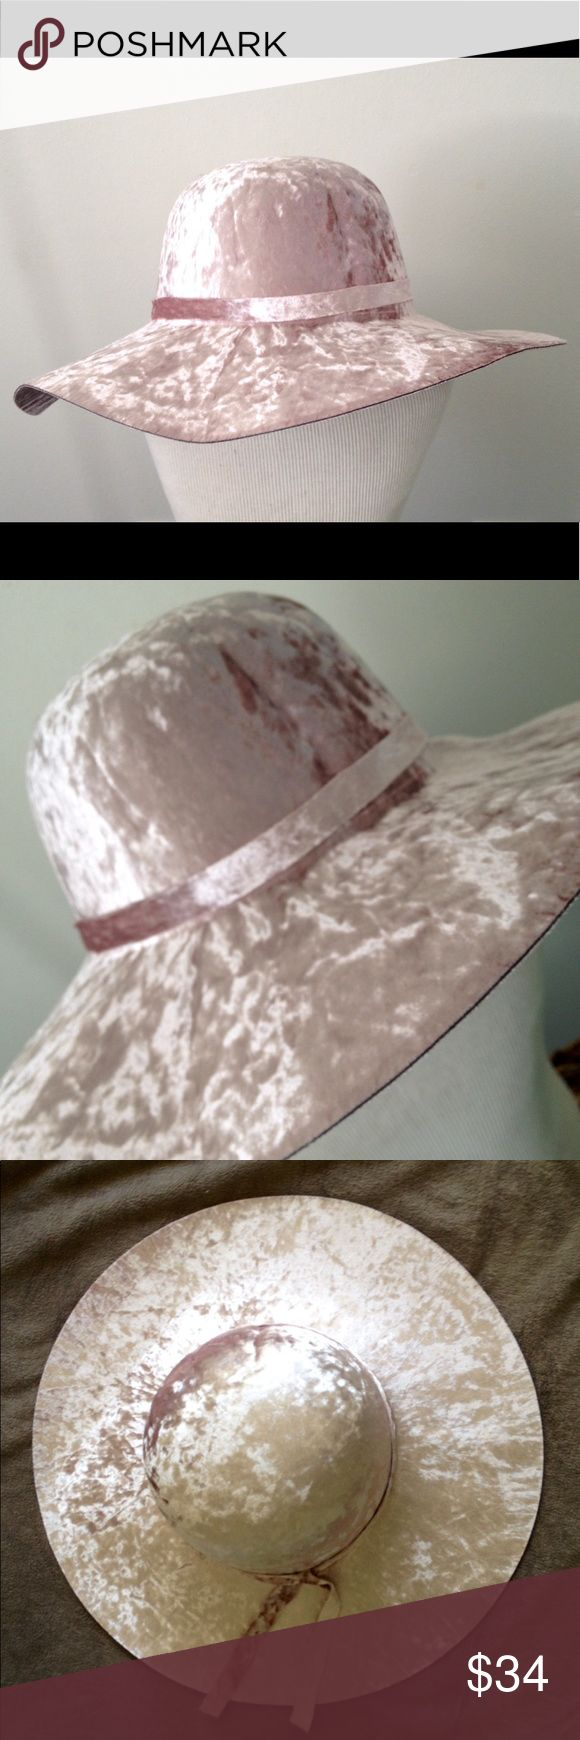 Lightweight velvet 4 inch floppy hat, adjustable One size fits all 4 inch velvet floppy with adjustable drawstring.  Very soft blush pink.  Amazing hat for all seasons. Accessories Hats